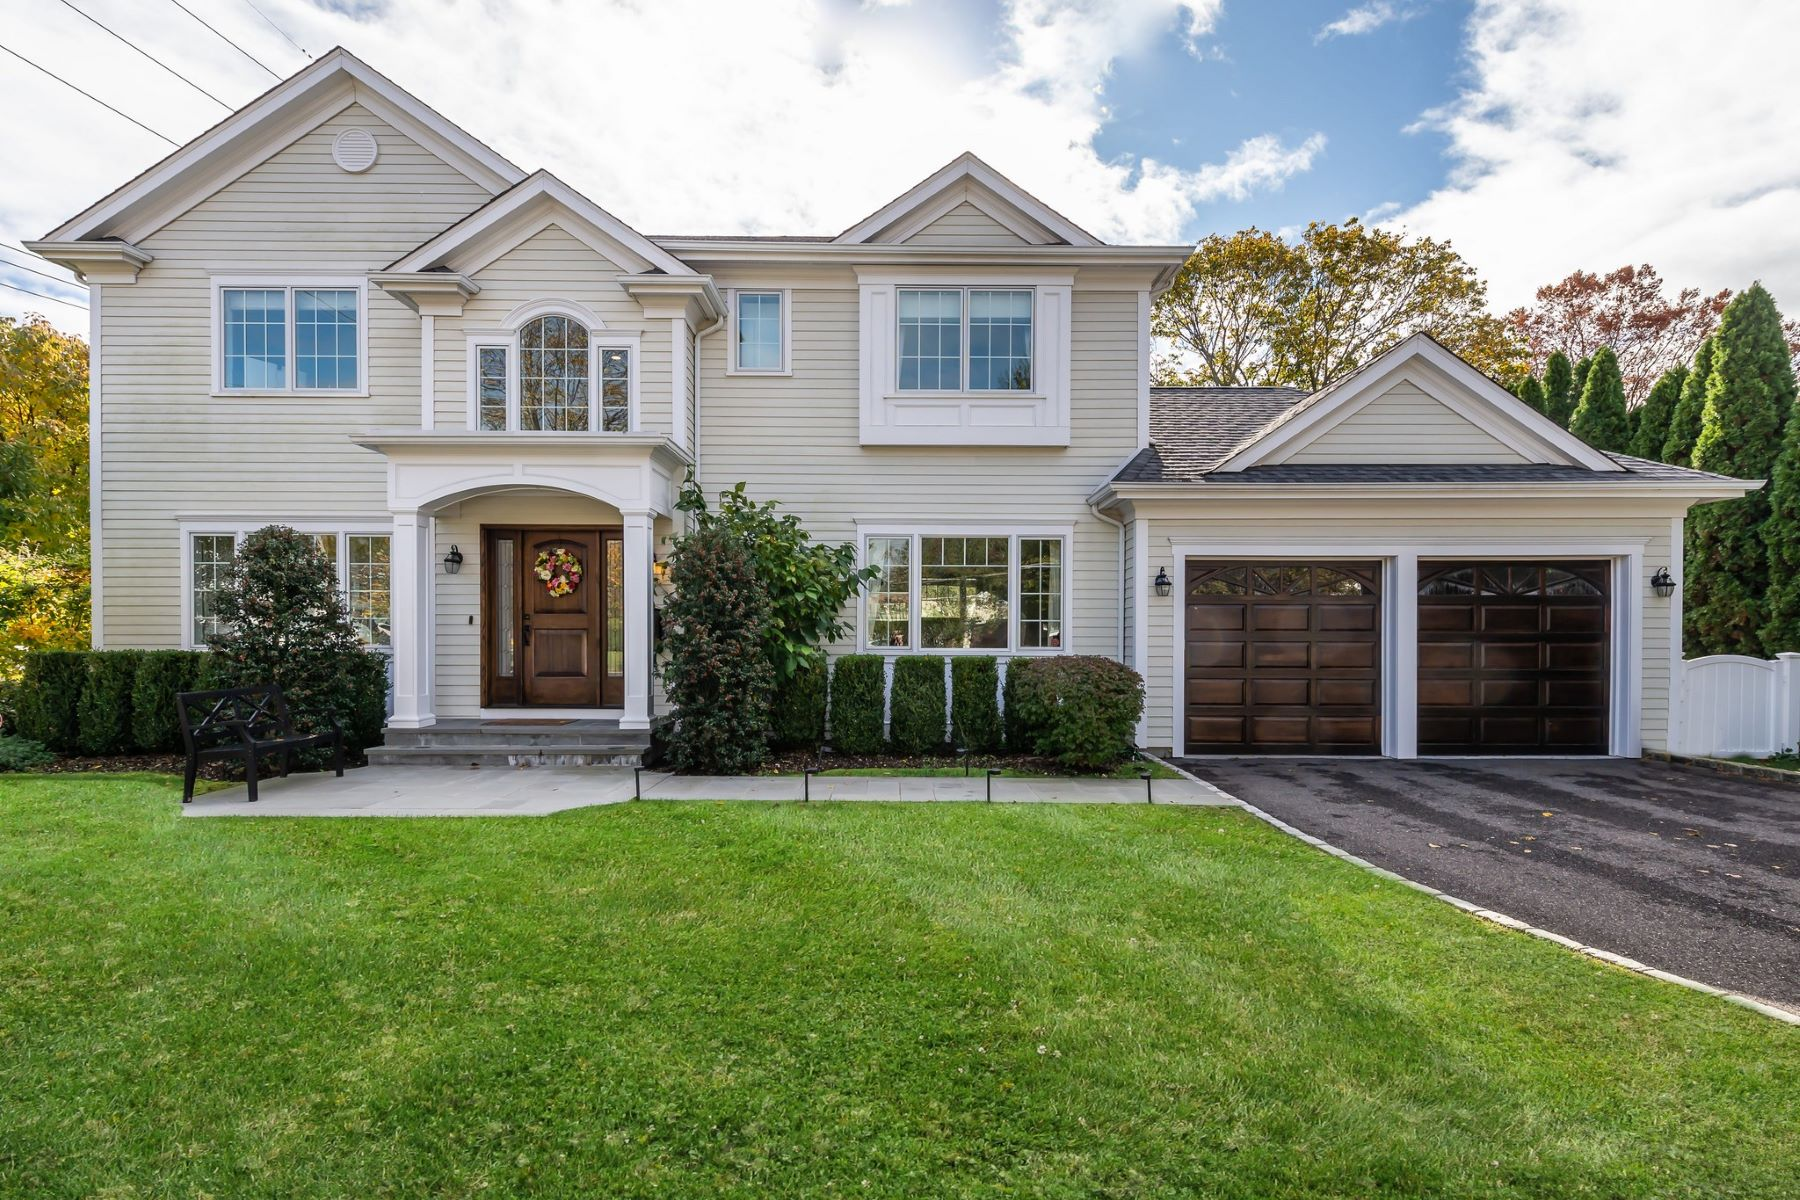 Single Family Homes for Sale at Syosset 1 East St Syosset, New York 11791 United States